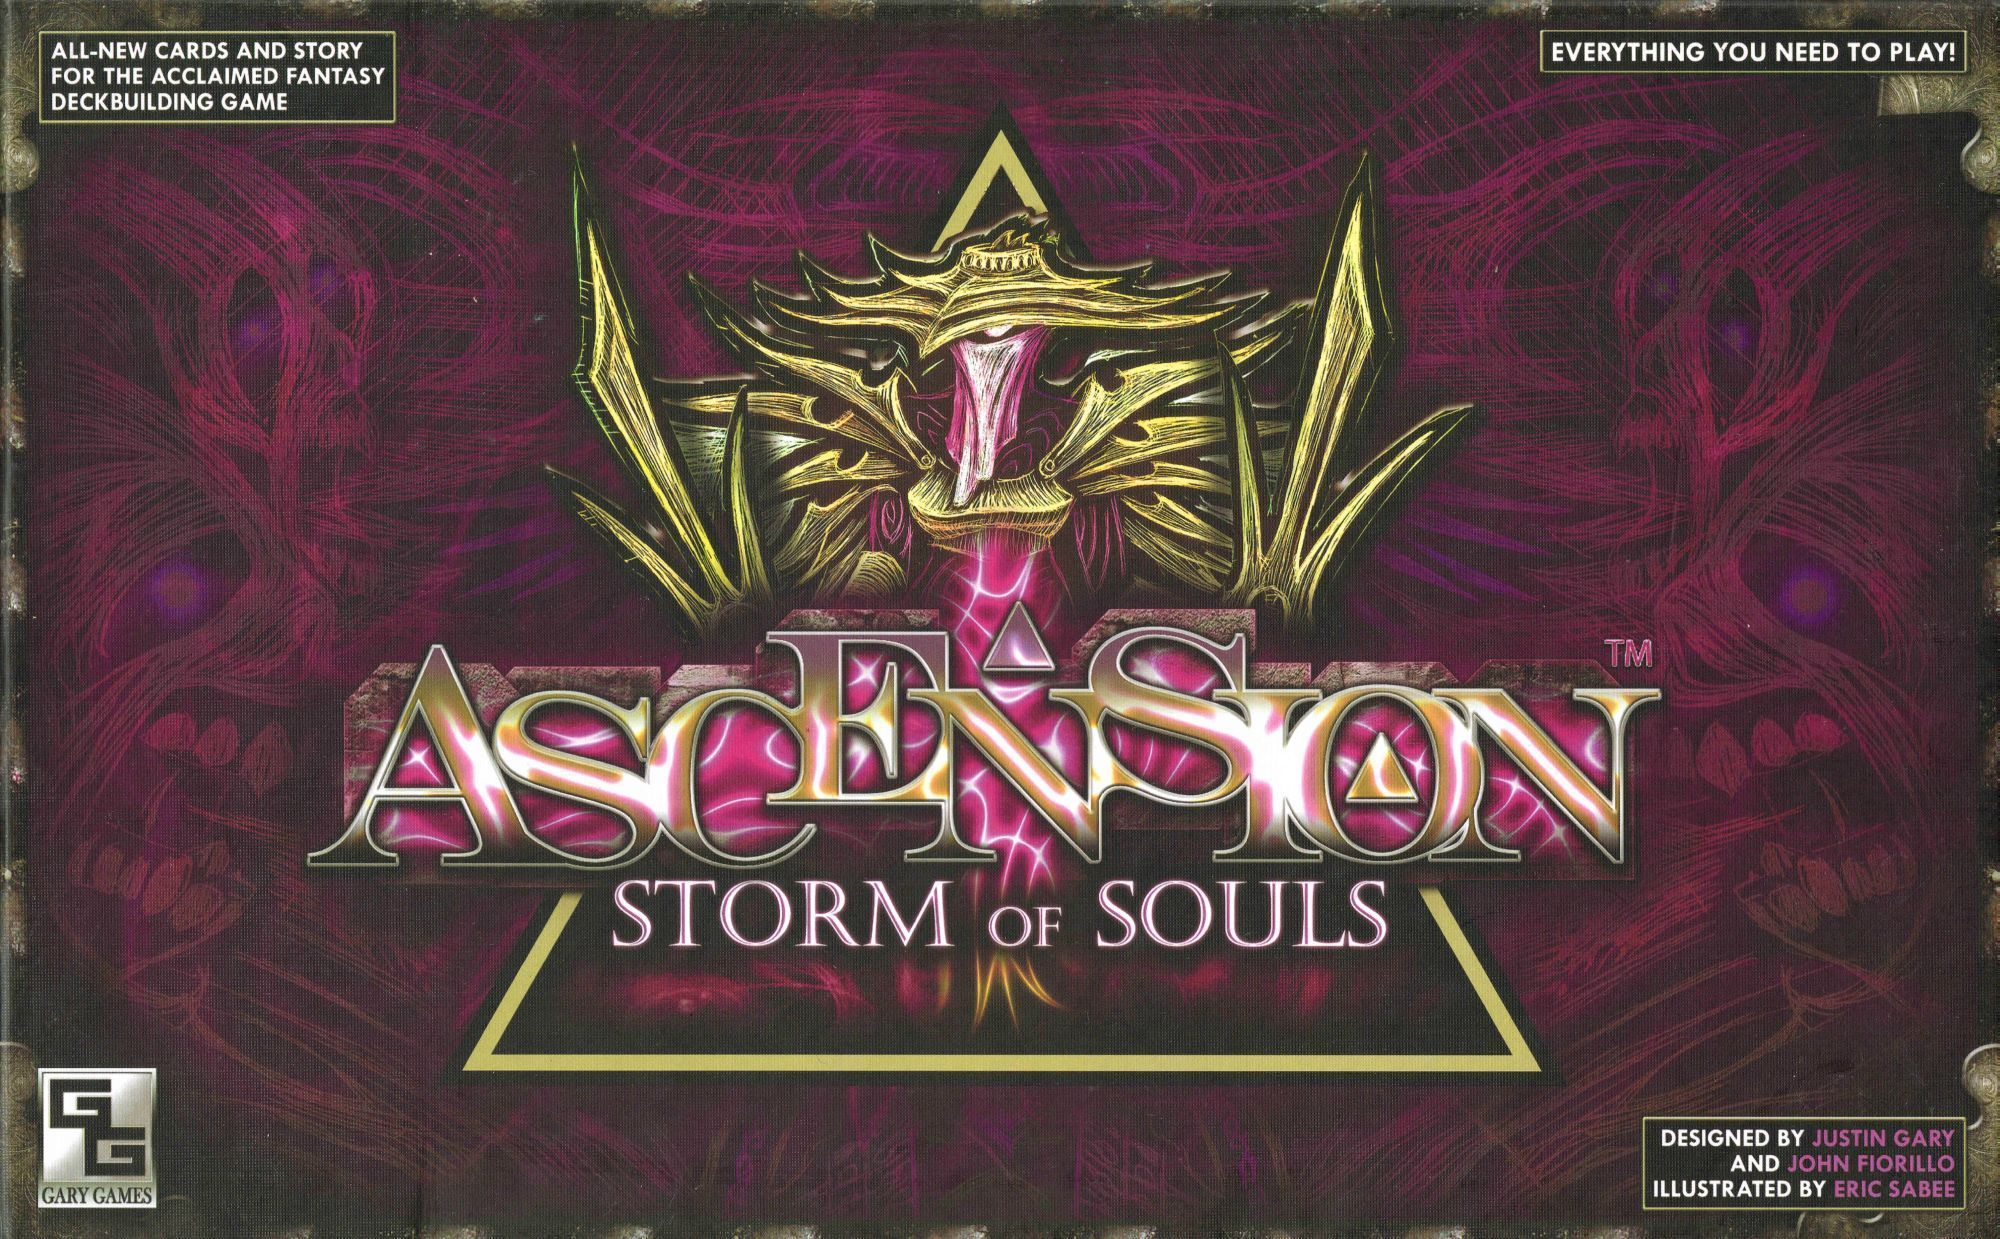 Main image for Ascension: Storm of Souls board game